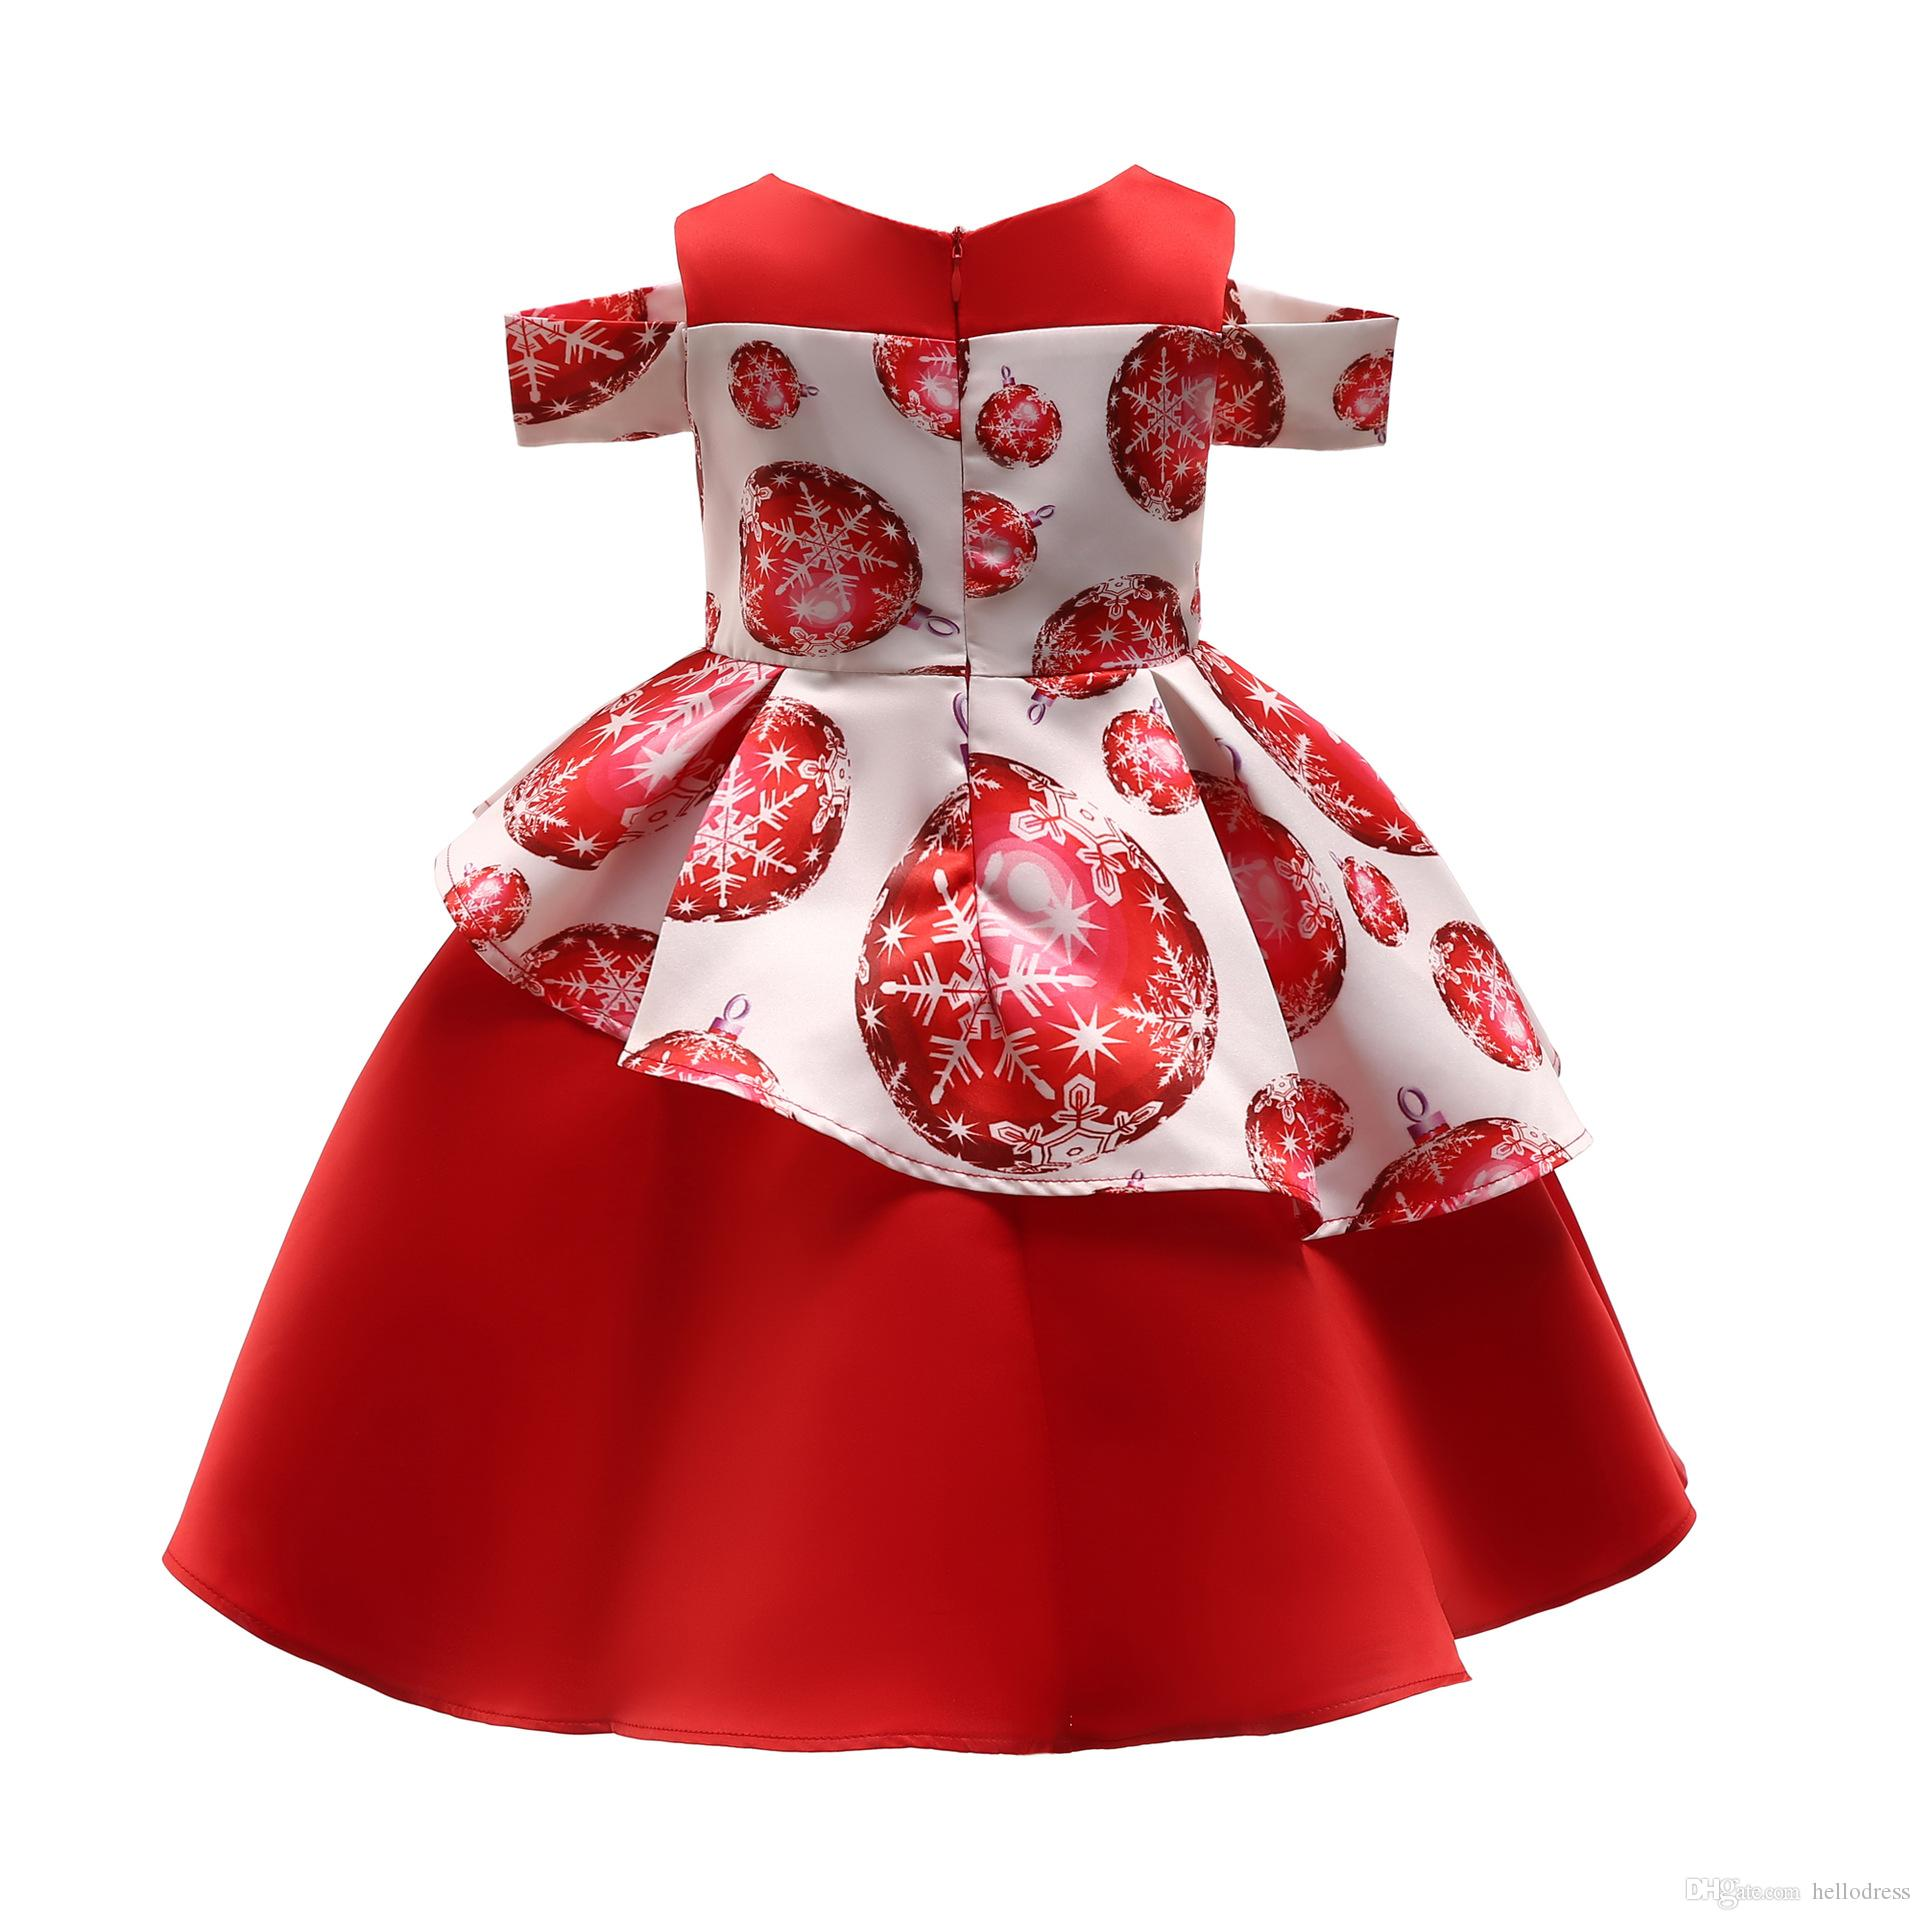 106693c962a Red Off Shoulder Ball Gown Flower Girl Dresses Short Sleeves Jewel Neck Knee  Length Floral Formal Kids Dresses For Prom Party Holiday Casual Dresses For  ...